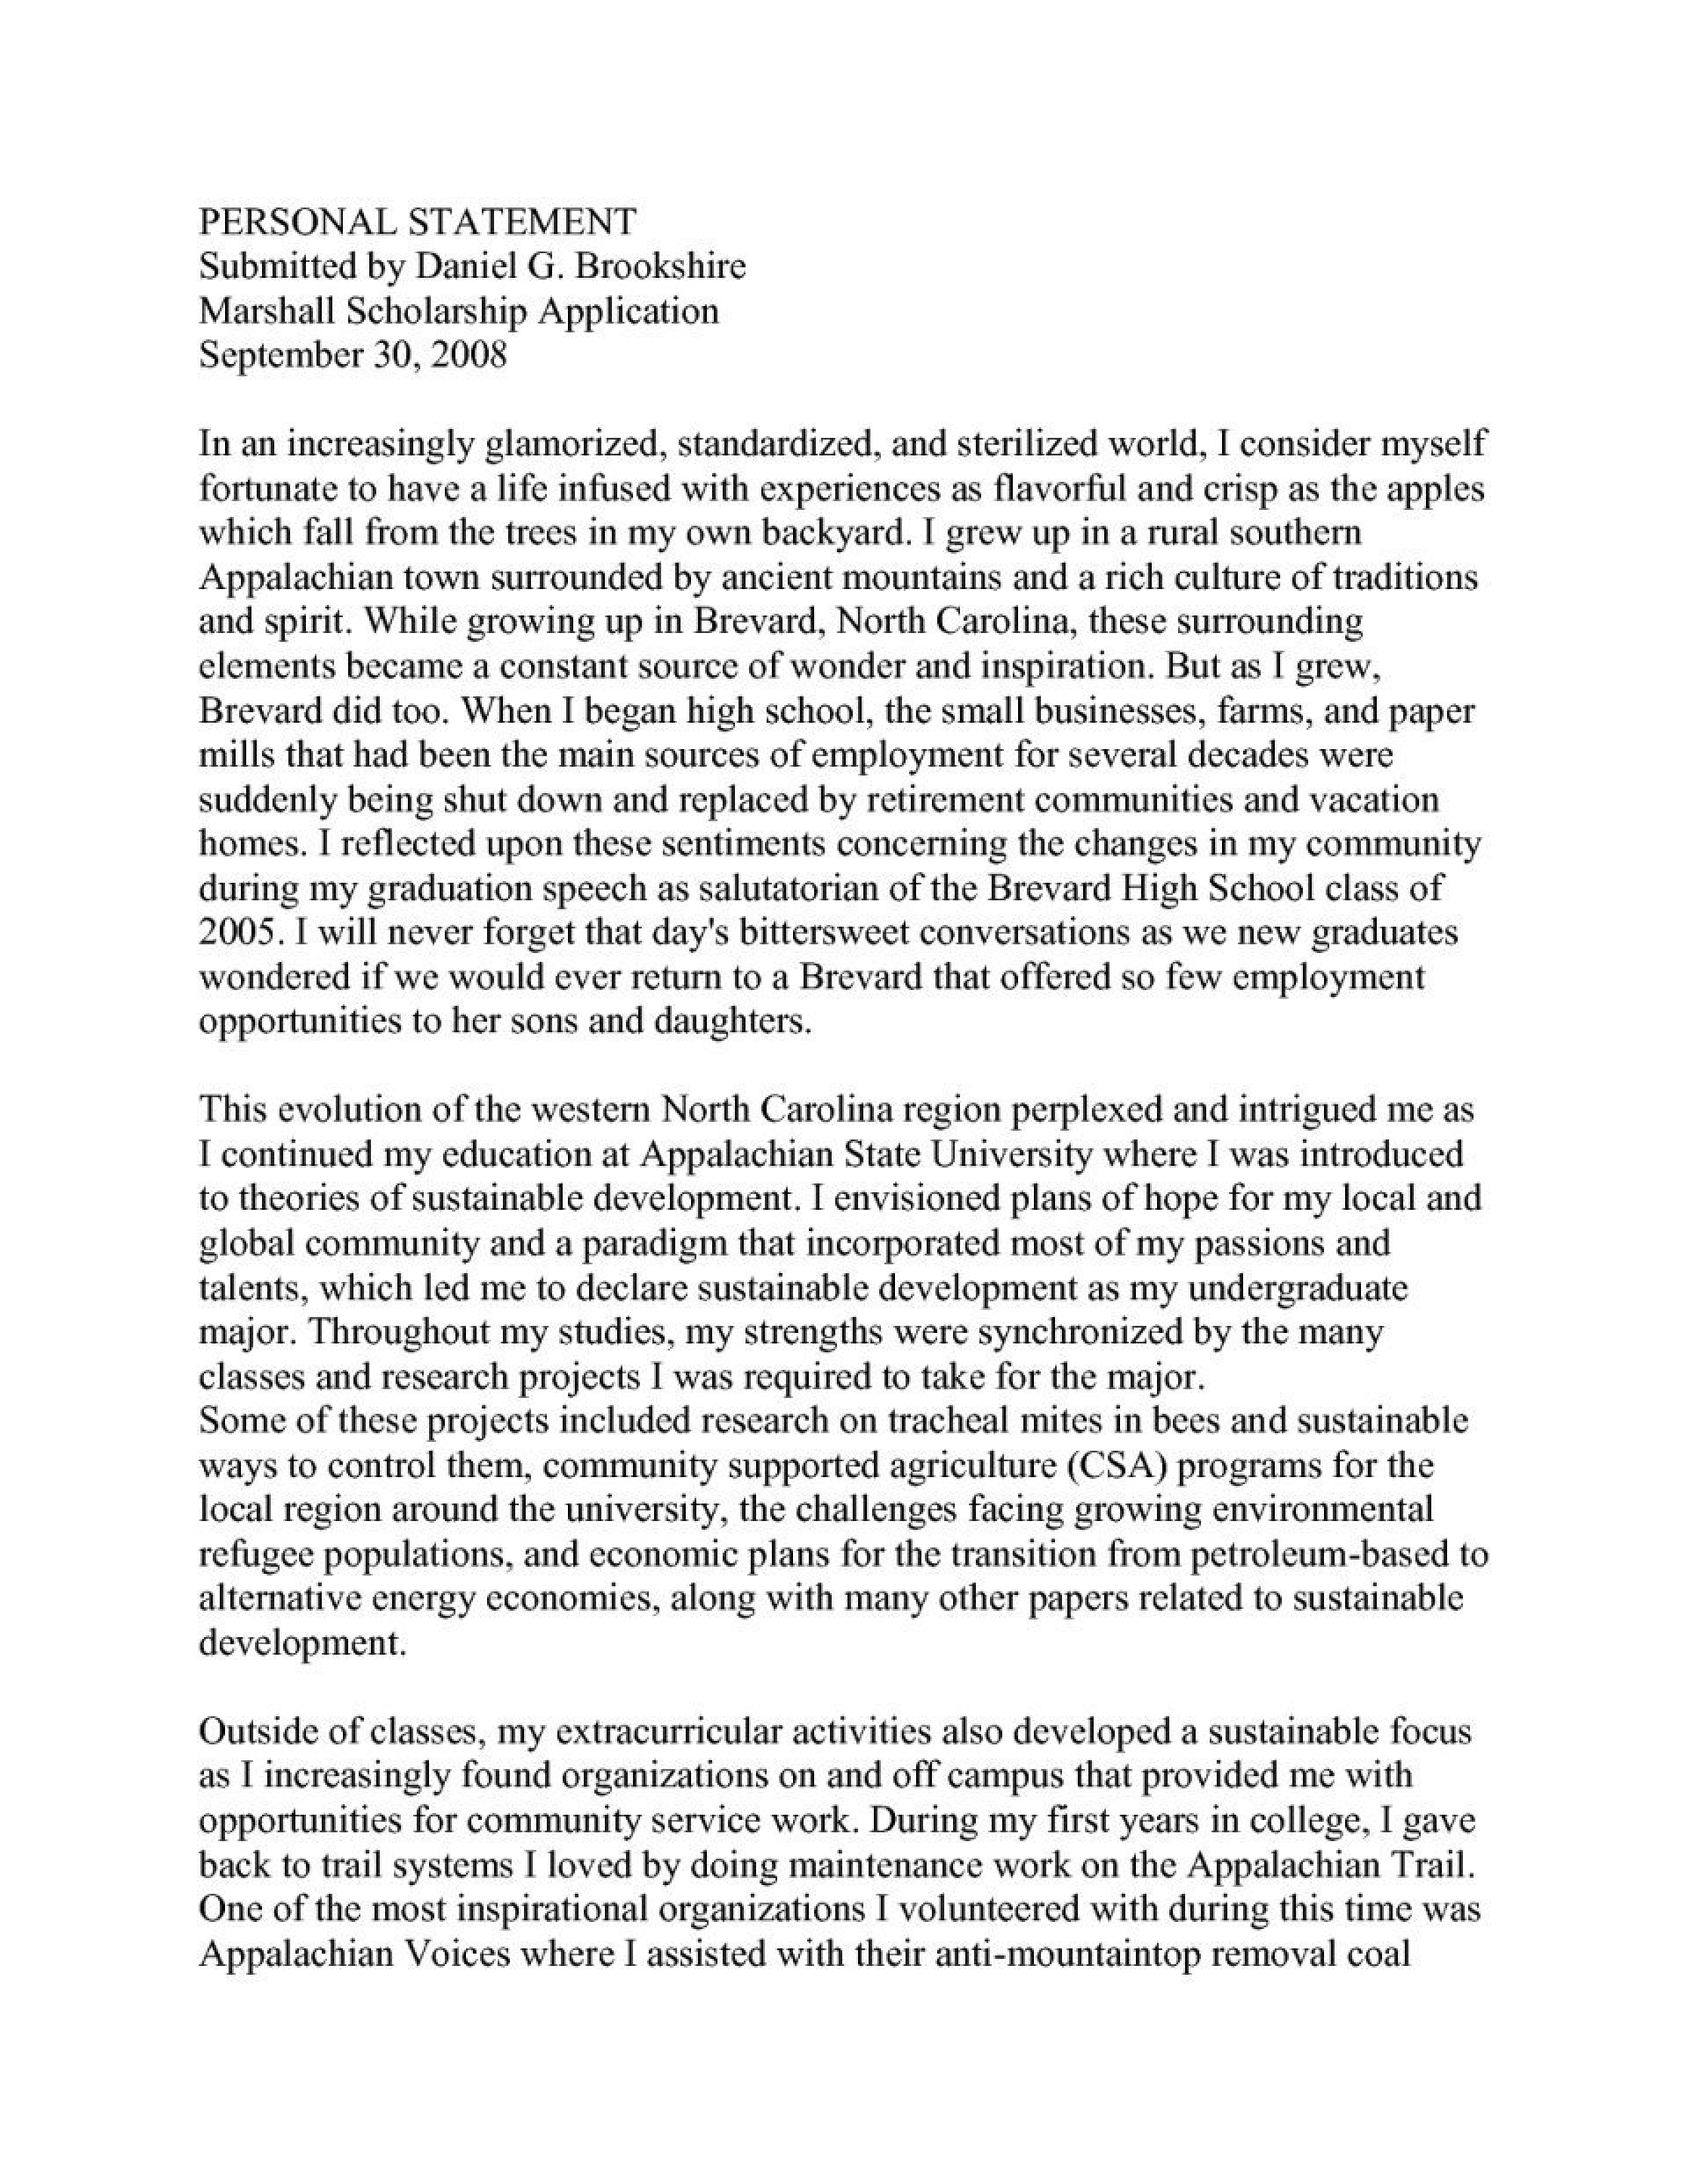 College essay community service project